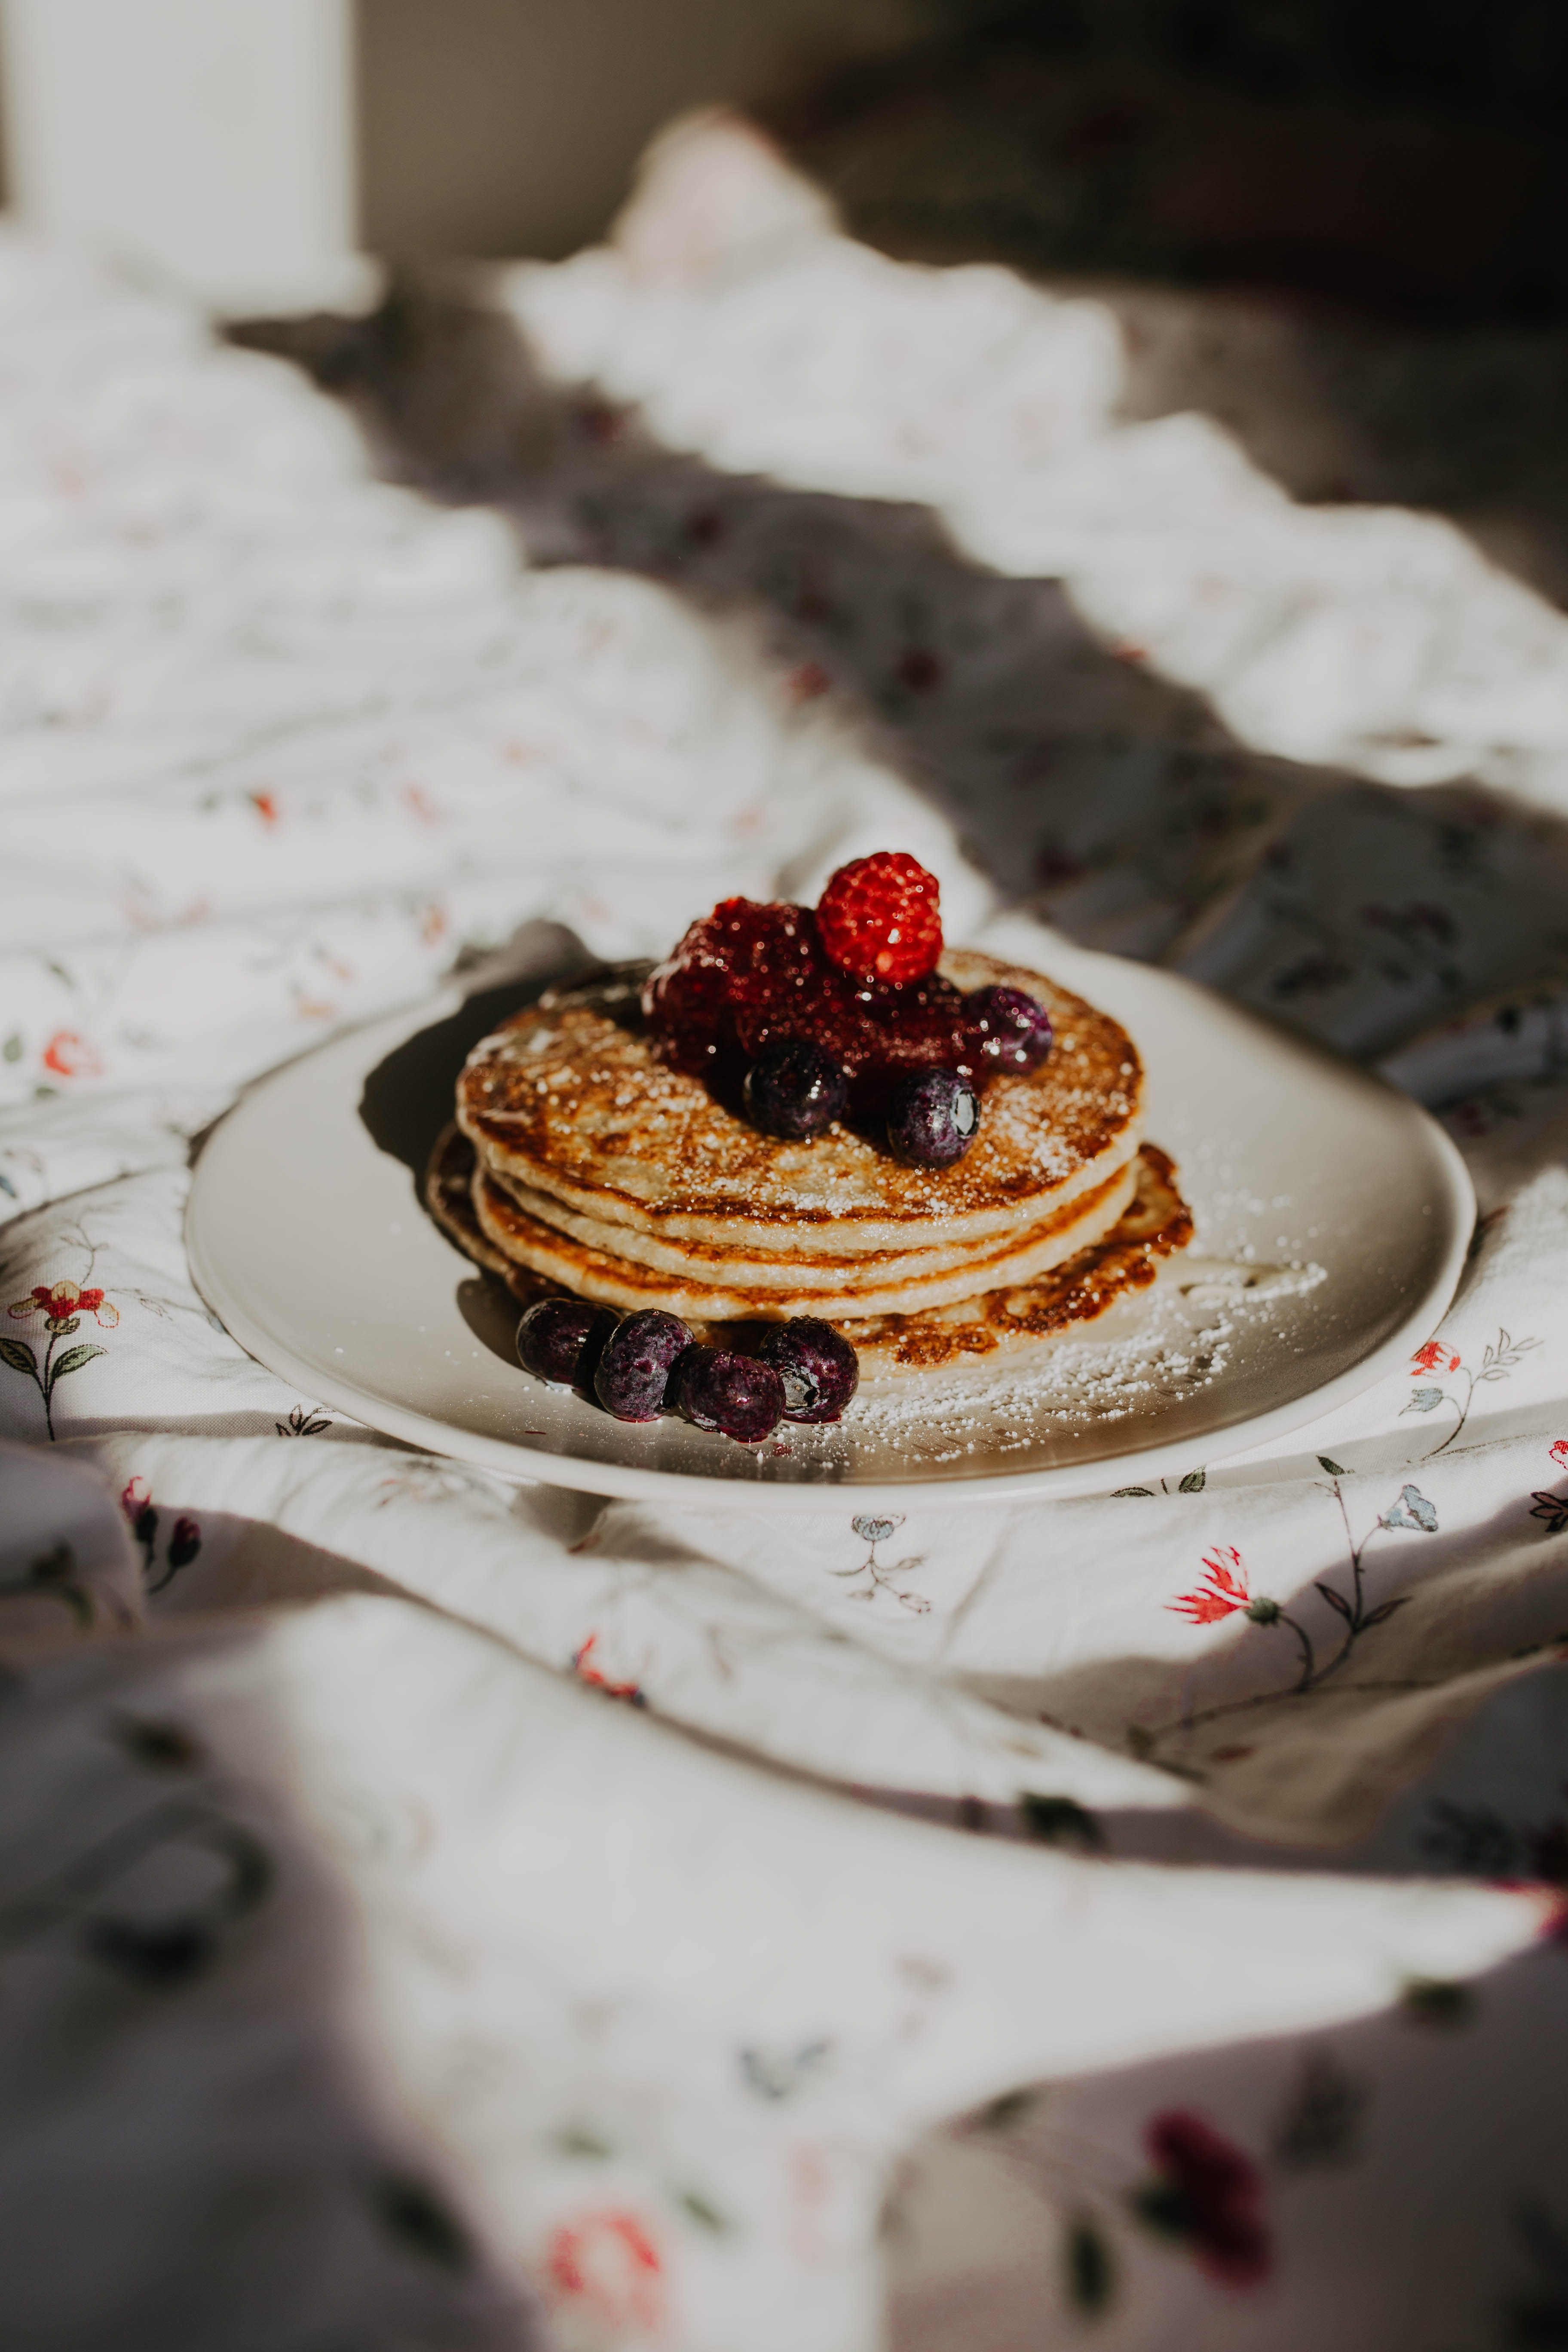 148979 download wallpaper Food, Pancakes, Desert, Bakery Products, Baking, Raspberry, Breakfast, Bilberries, Berries screensavers and pictures for free